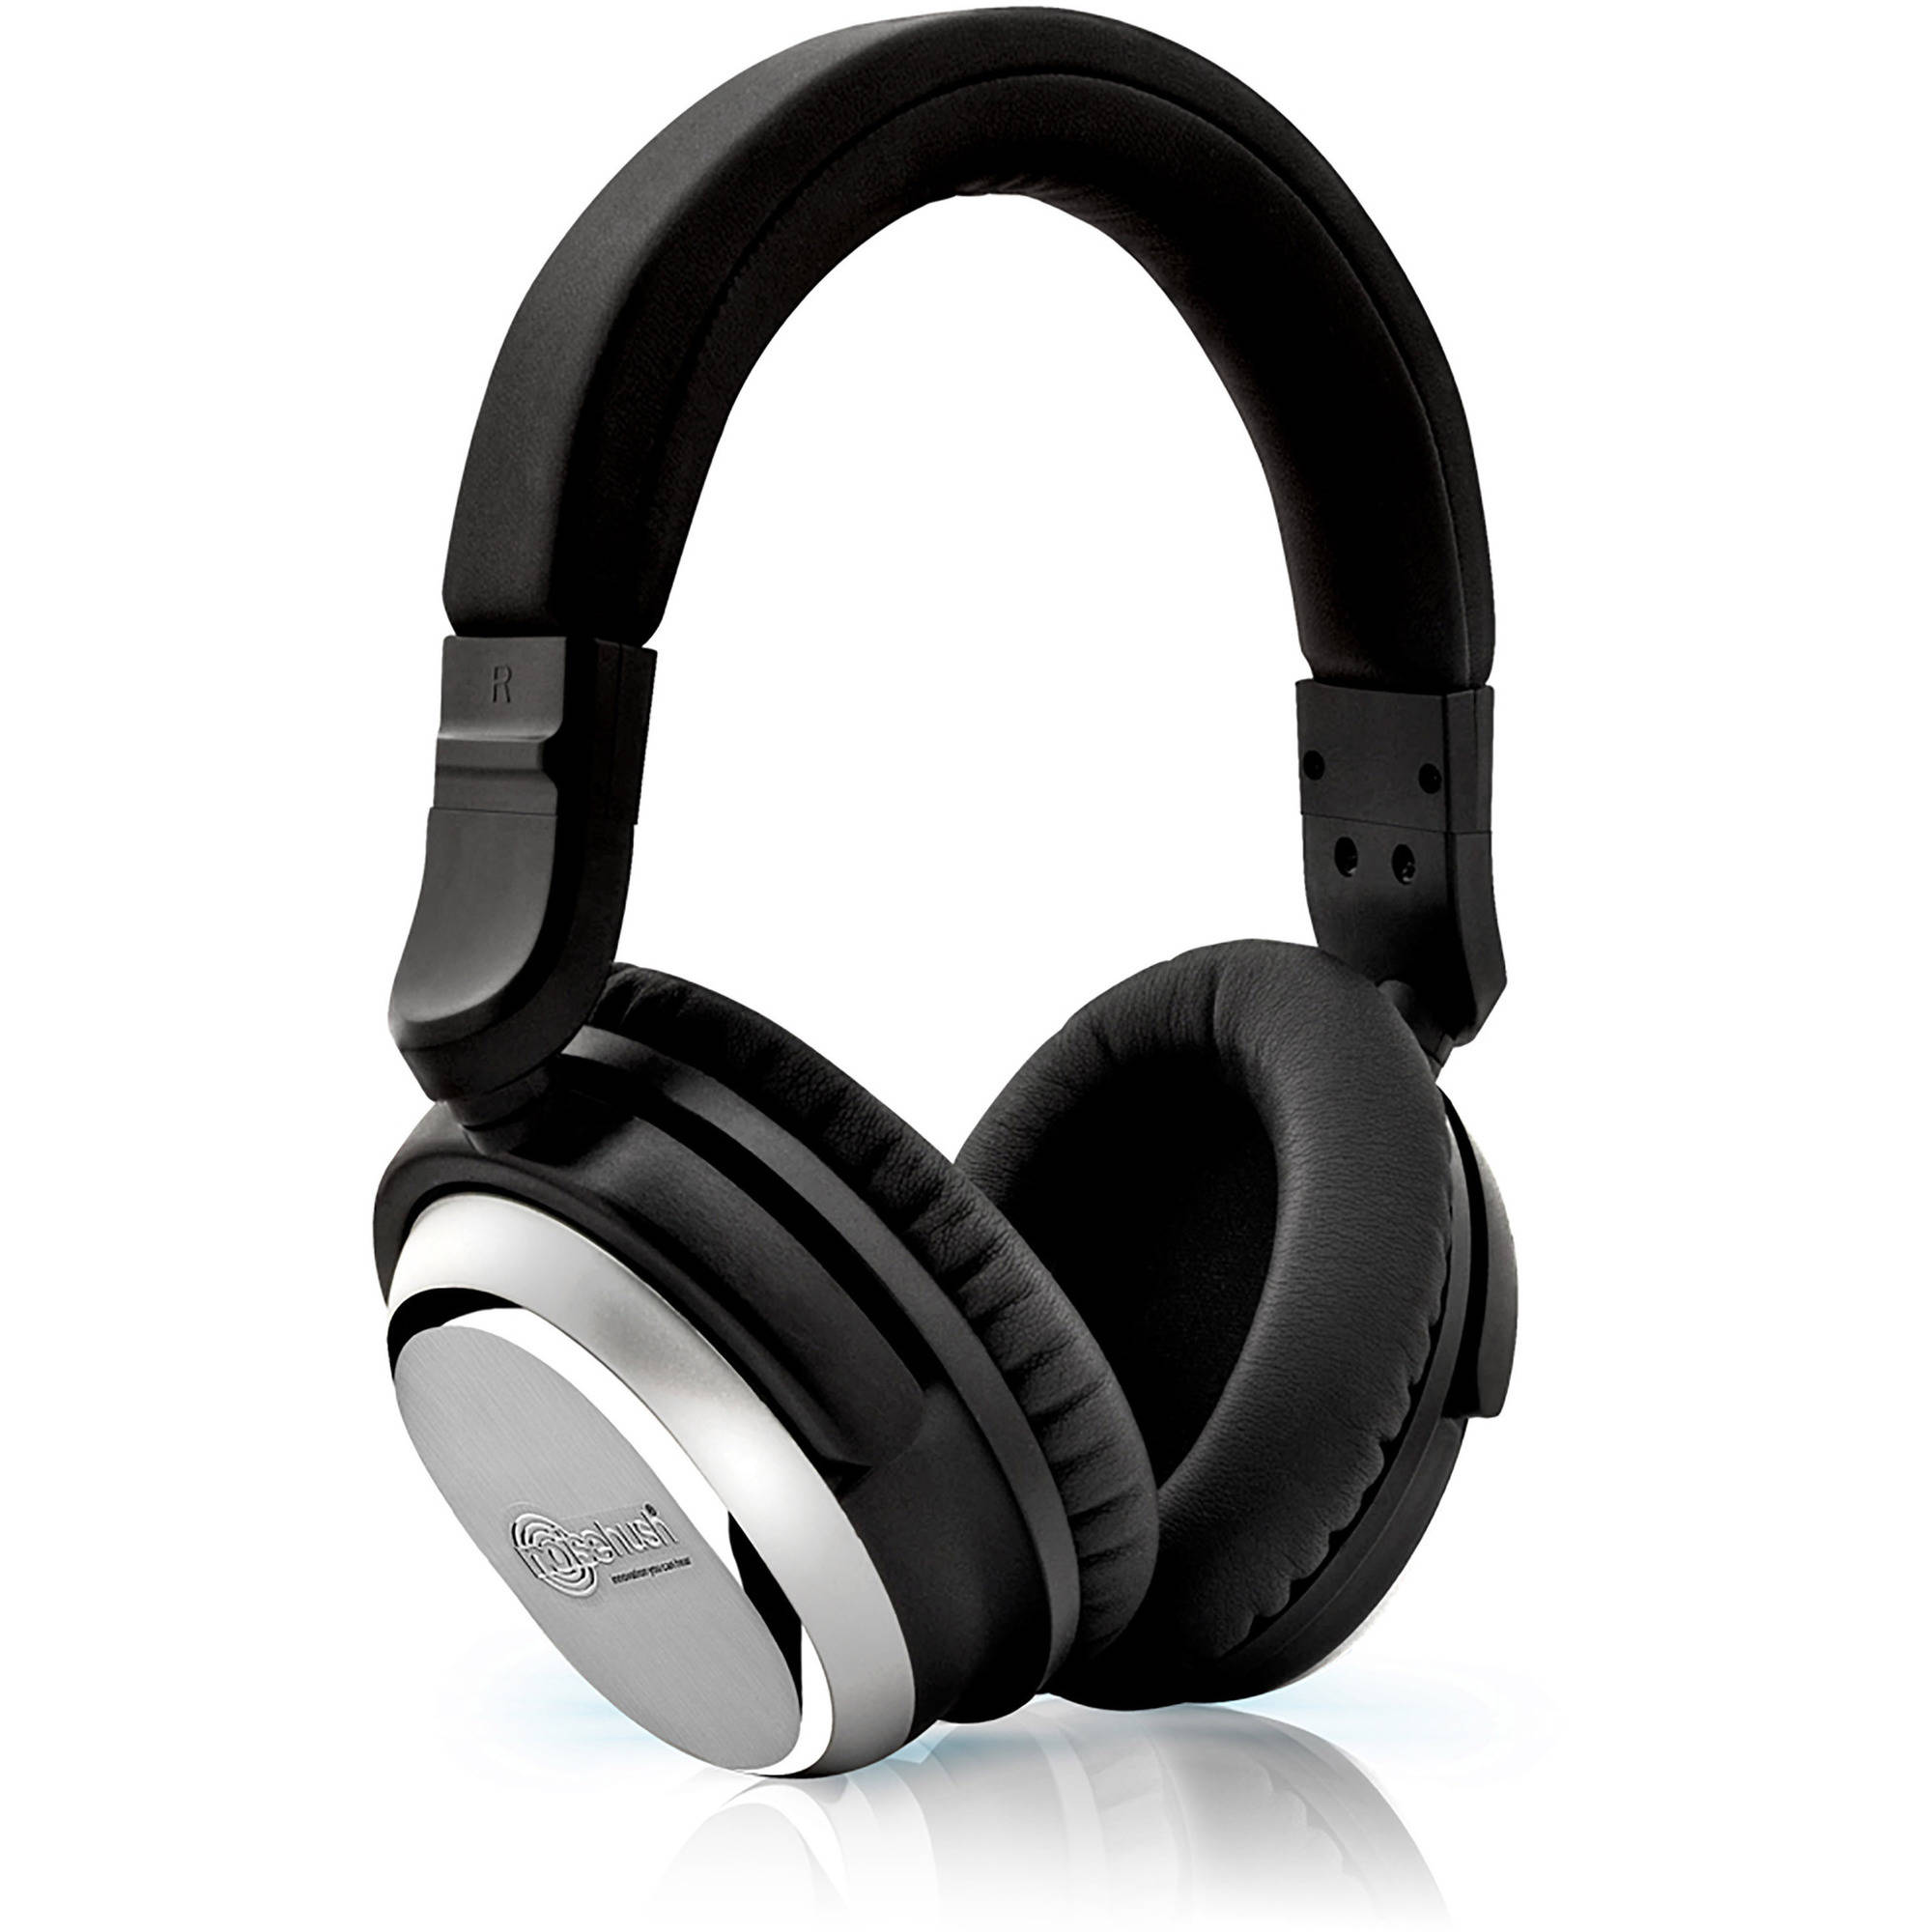 NoiseHush i7 Active Noise-Canceling Headphones, 3.5mm